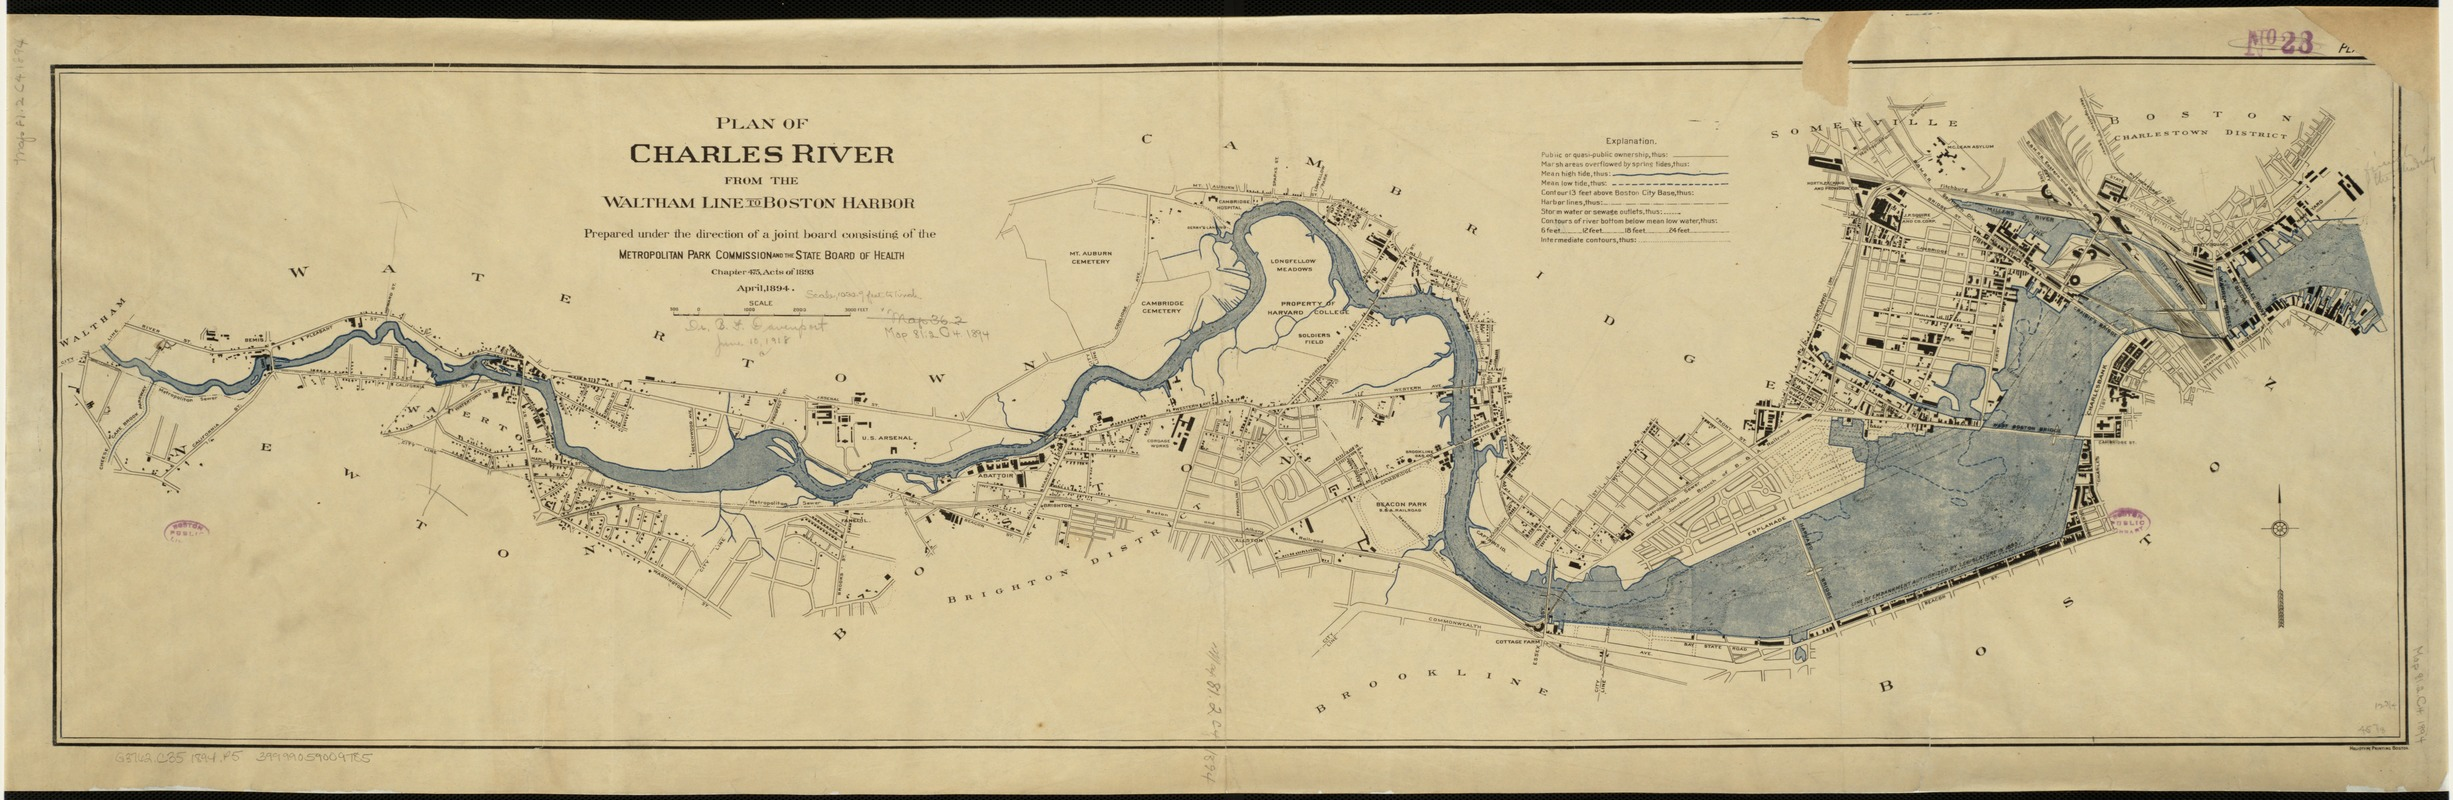 Plan of Charles River